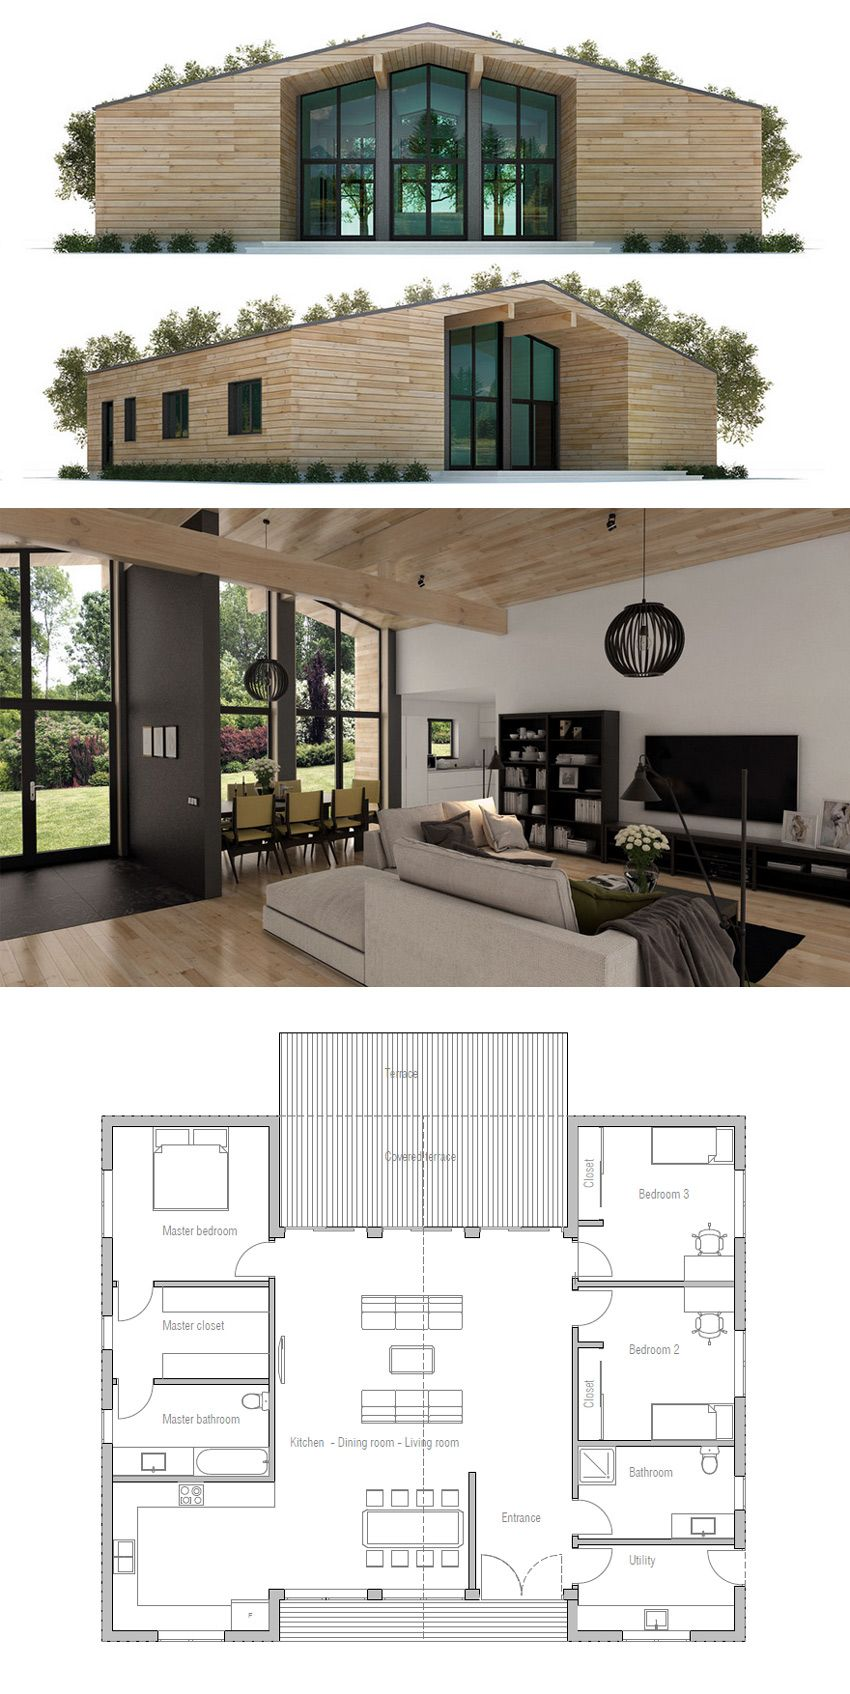 Home Plan Container House Plans Small House Plans House Plans